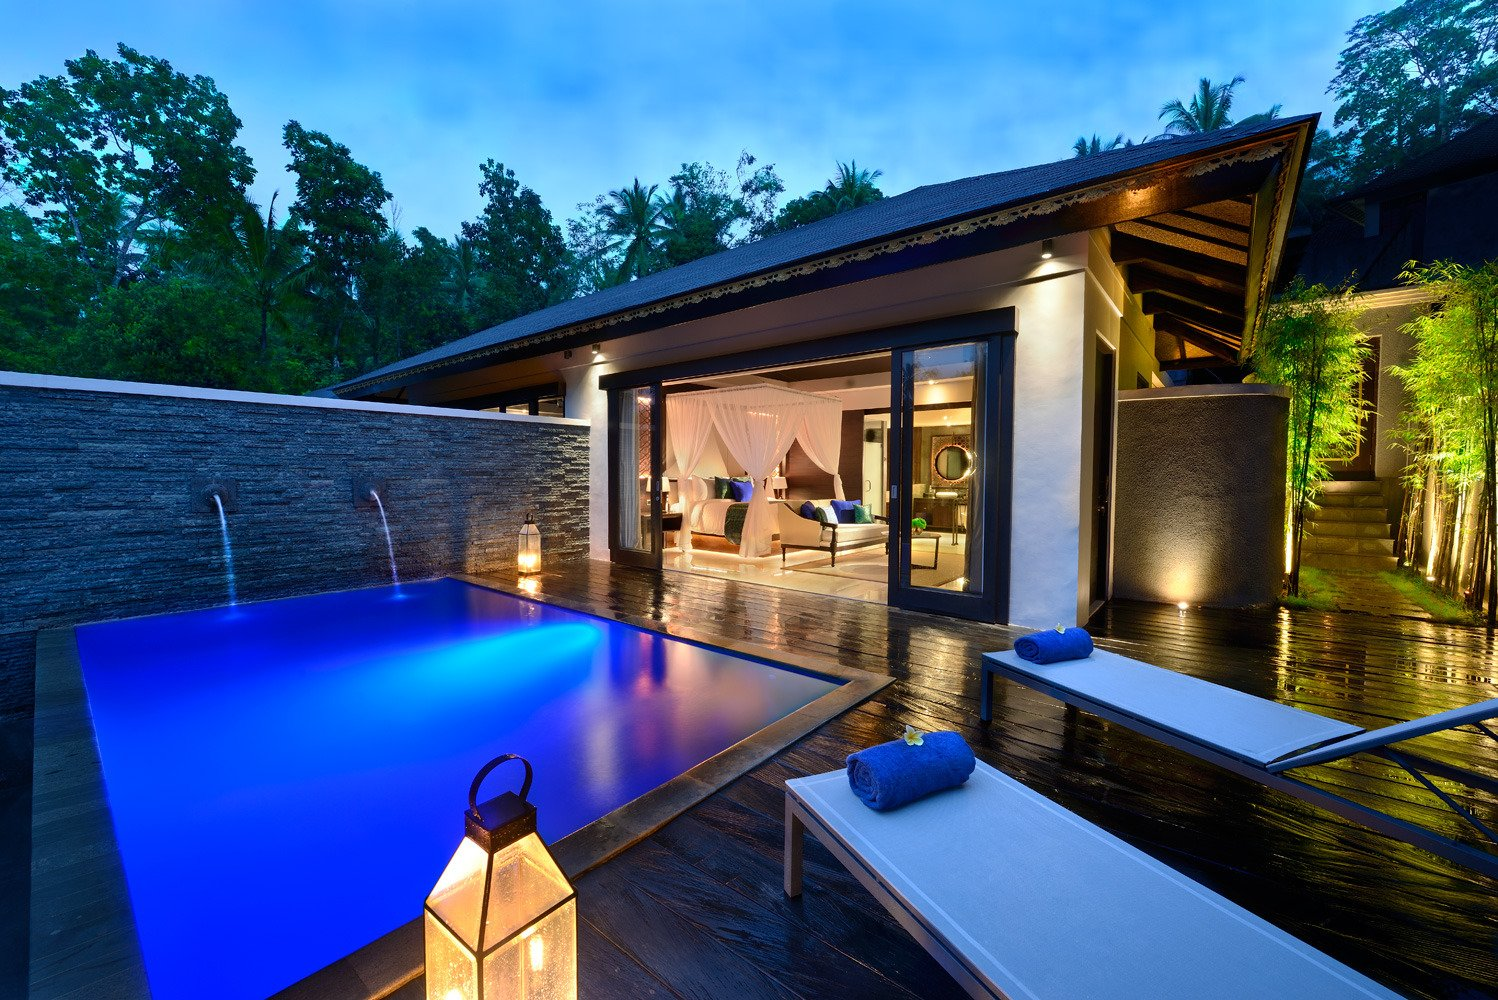 samsara ubud - prices & hotel reviews (bali/payangan) - tripadvisor